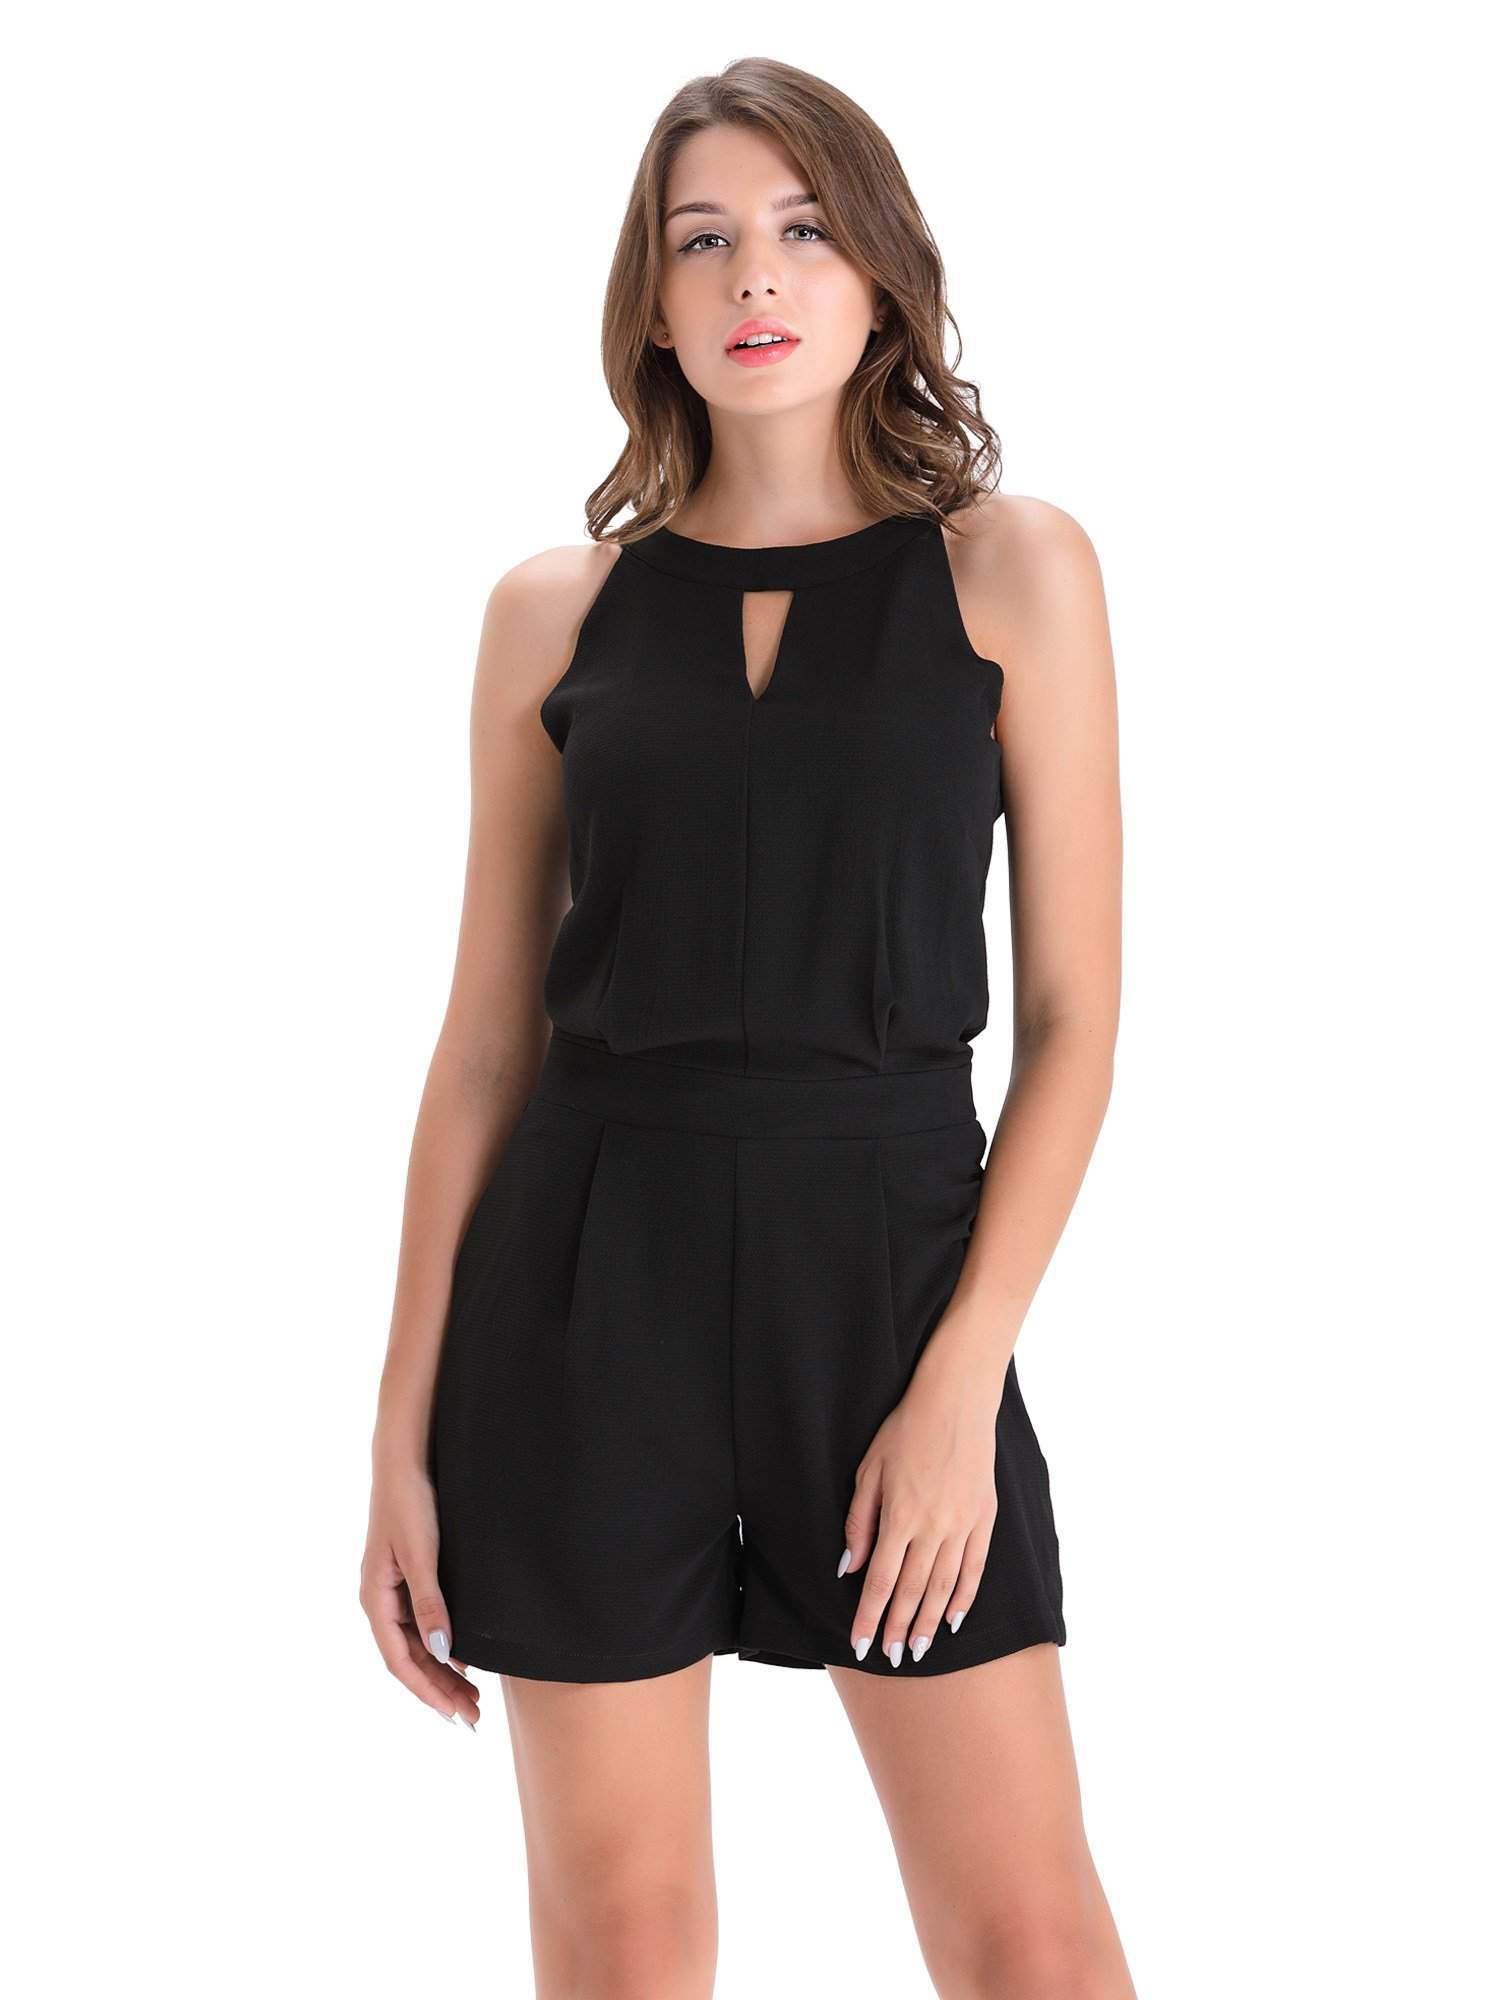 BARGOOS Women All-Black Cut Out Halter Neck Rompers Sleeveless Playsuit Summer Casual High Waist Mini Jumpsuits